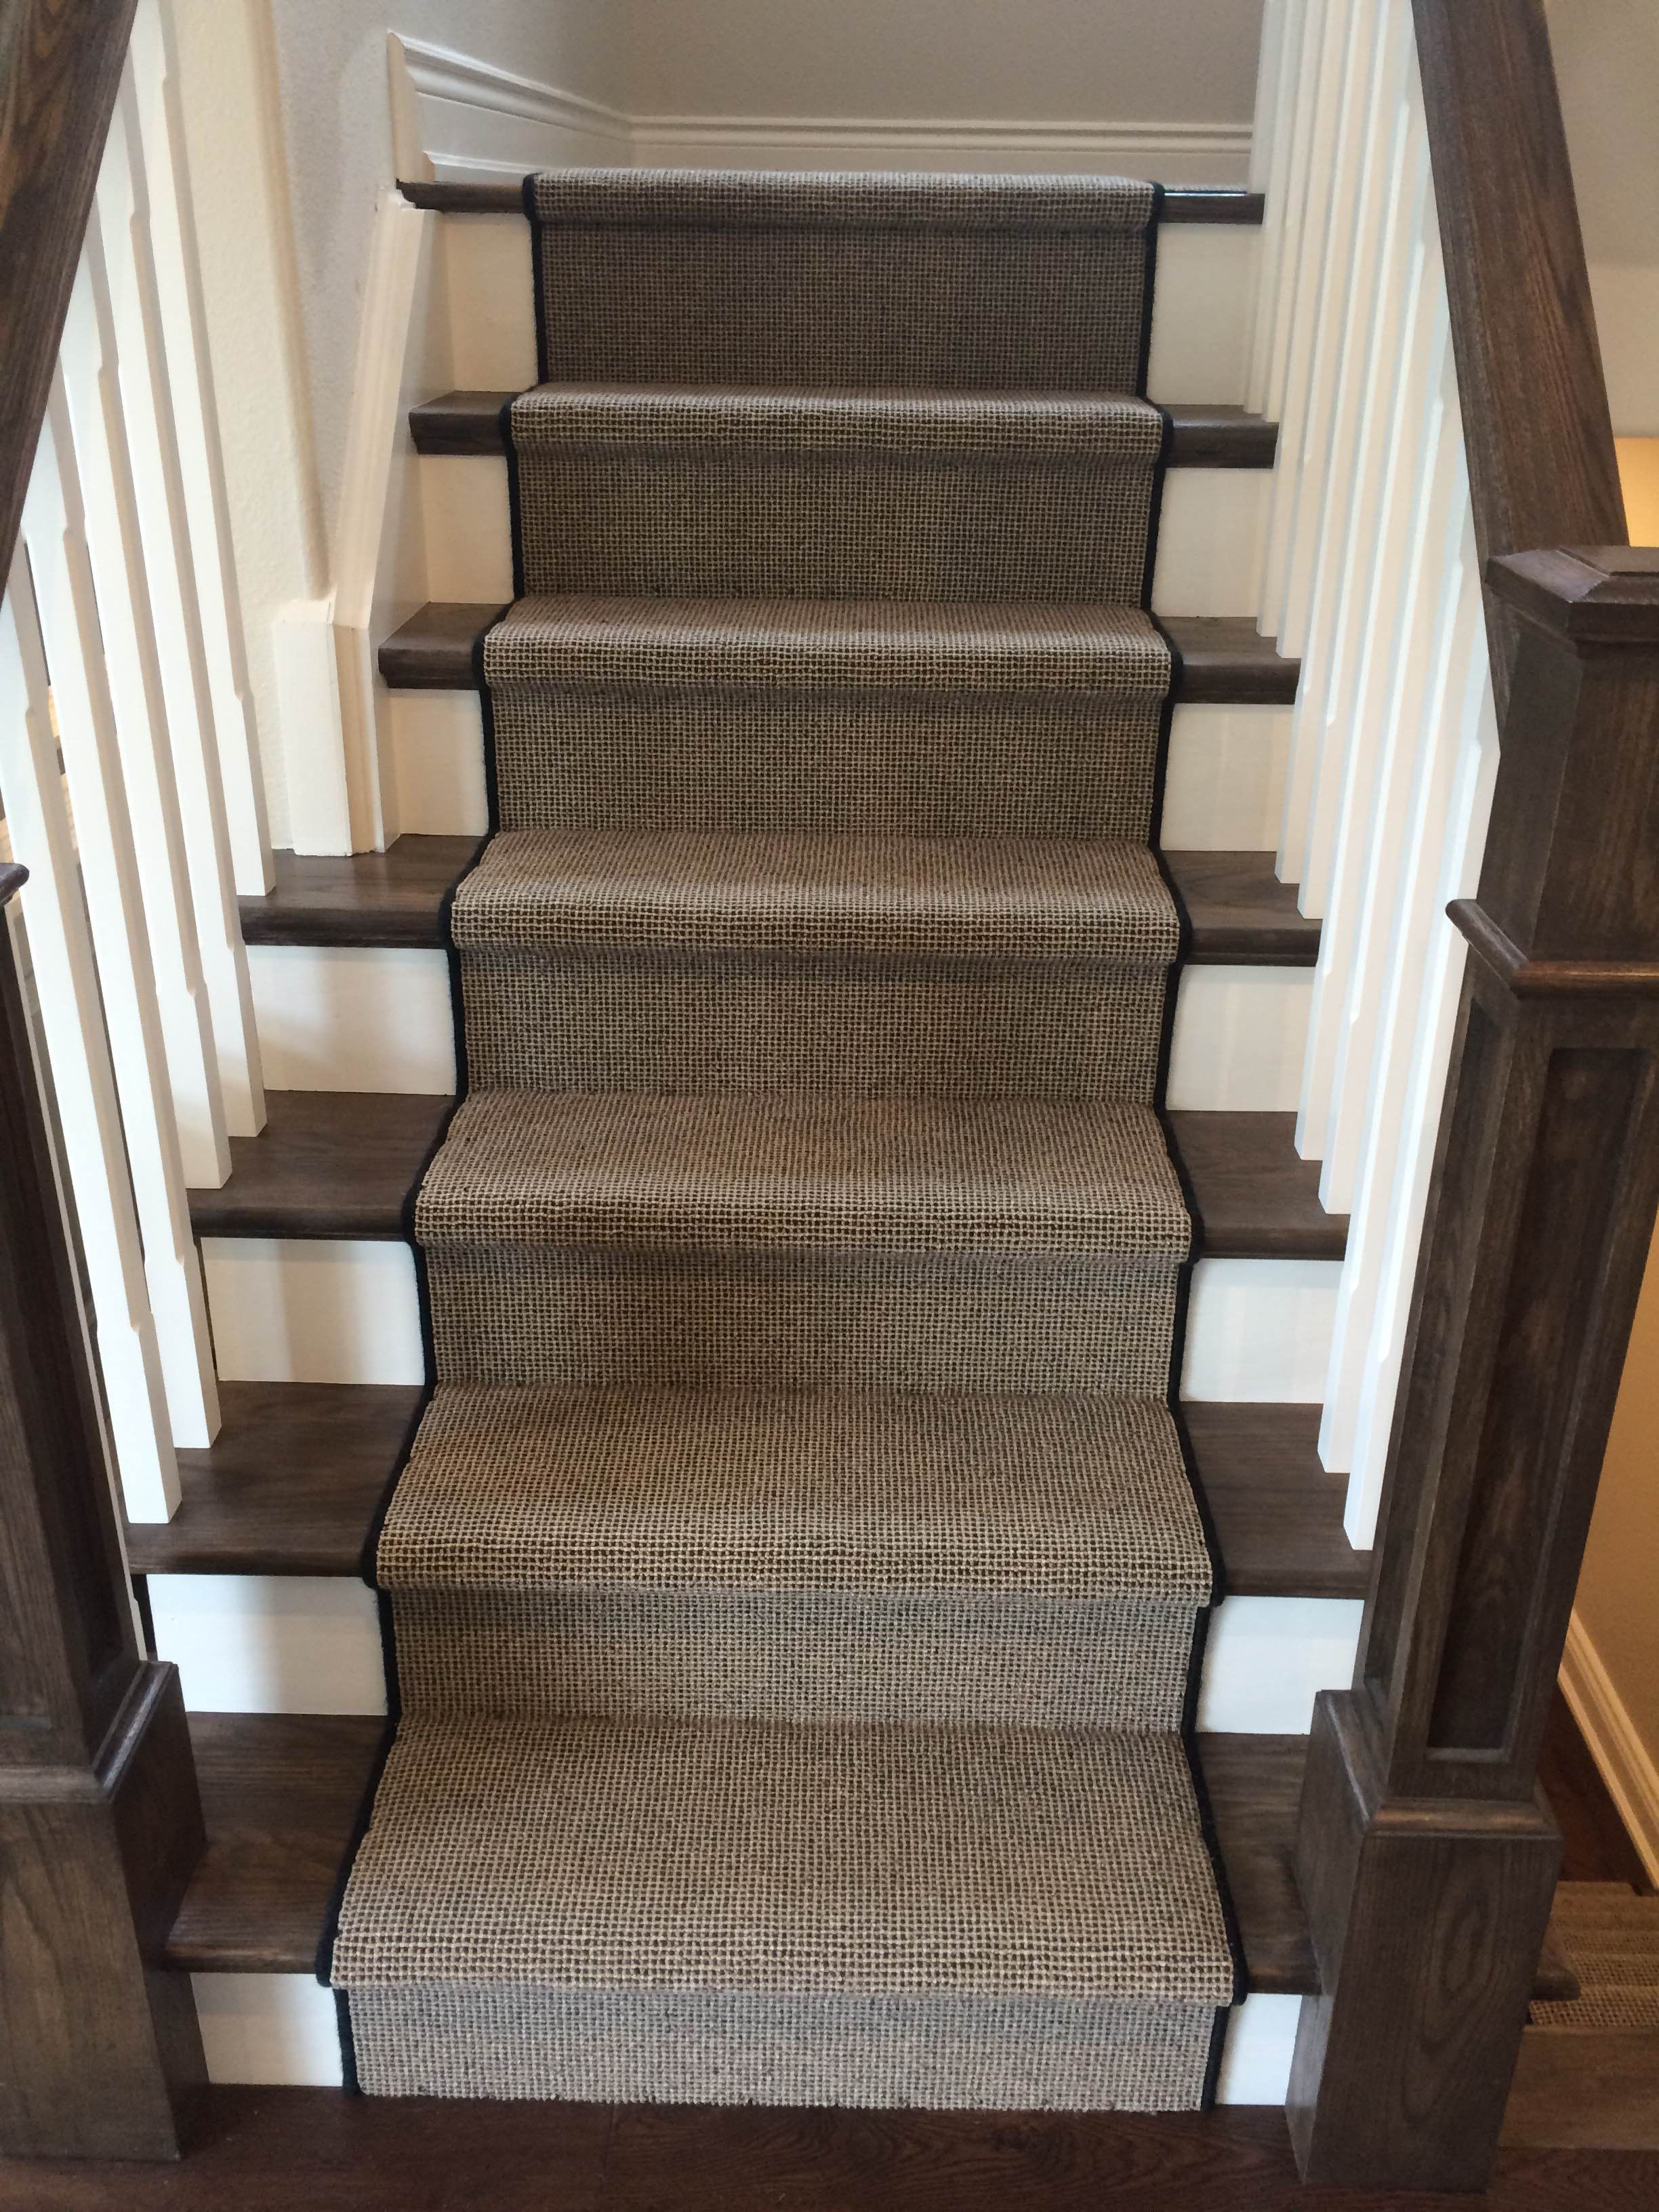 Alexanian S Custom Staircase Project This Carpet Is A Godfrey | Low Pile Carpet For Stairs | Laminate | Unusual | Looped | Antelope | Bedroom